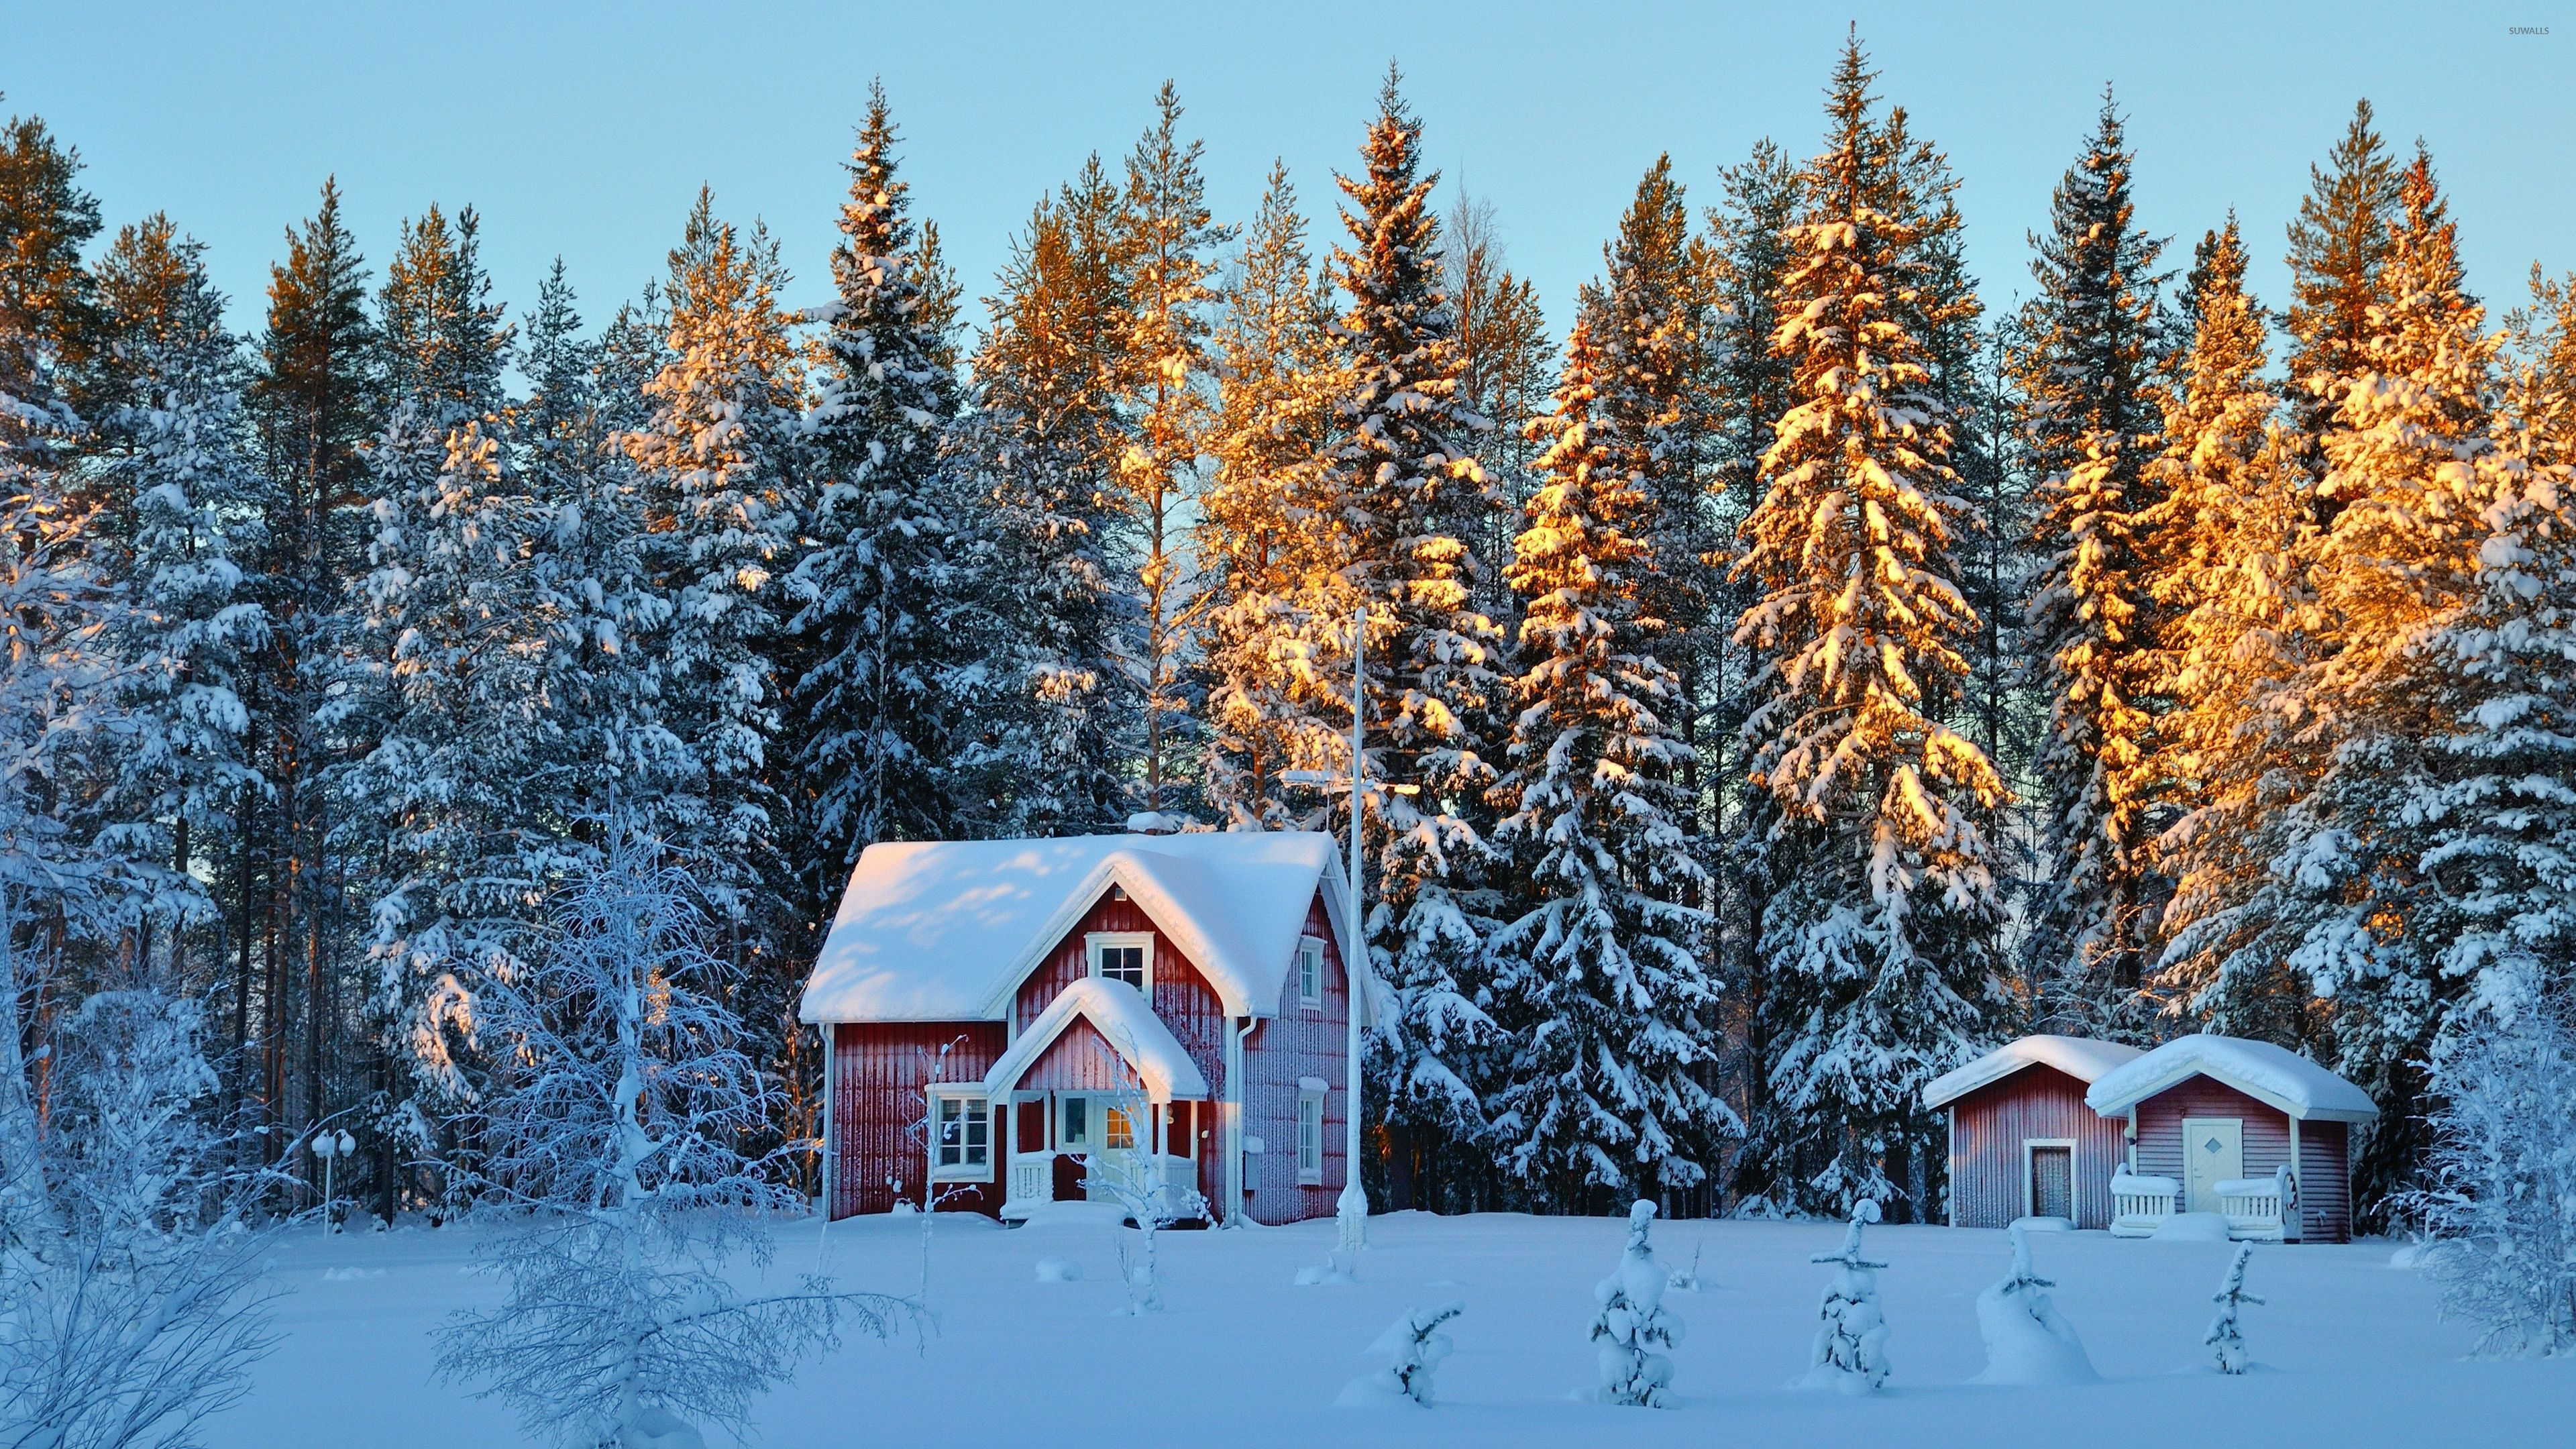 Small Houses In The Snowy Forest Wallpaper Nature